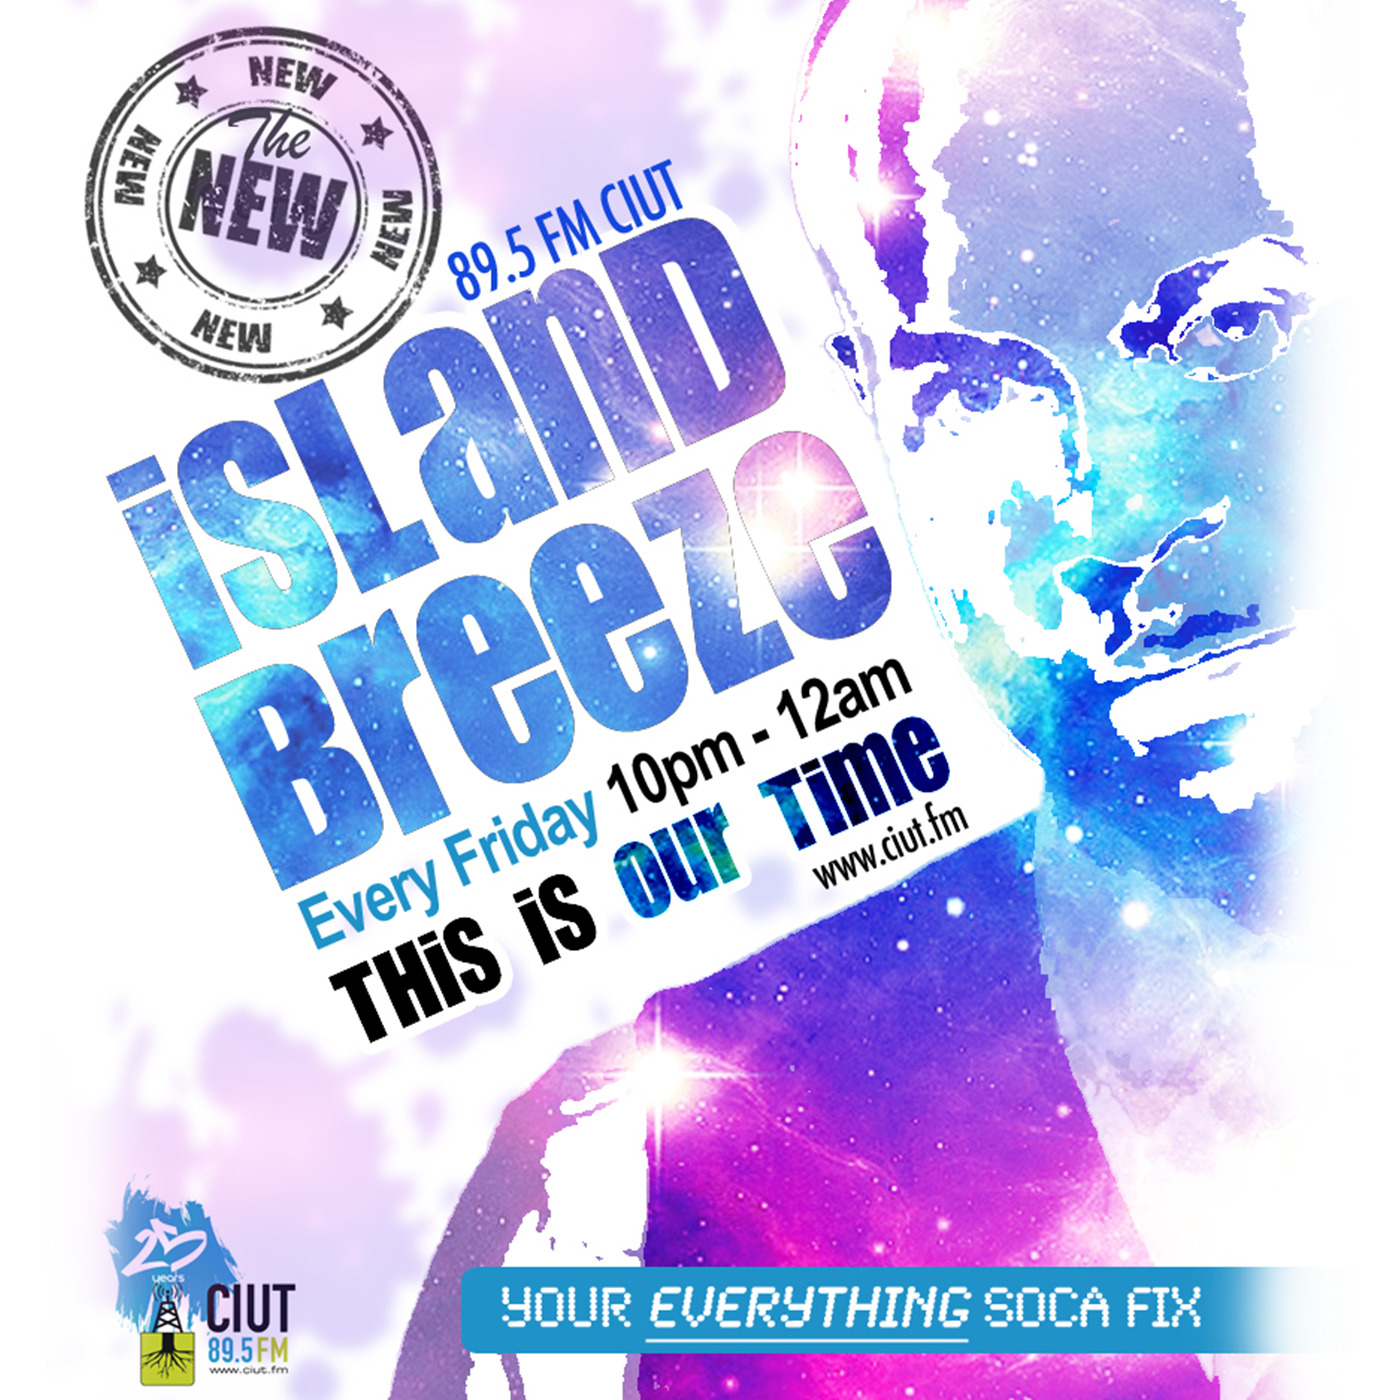 Island Breeze with DJ BASS and REVZ